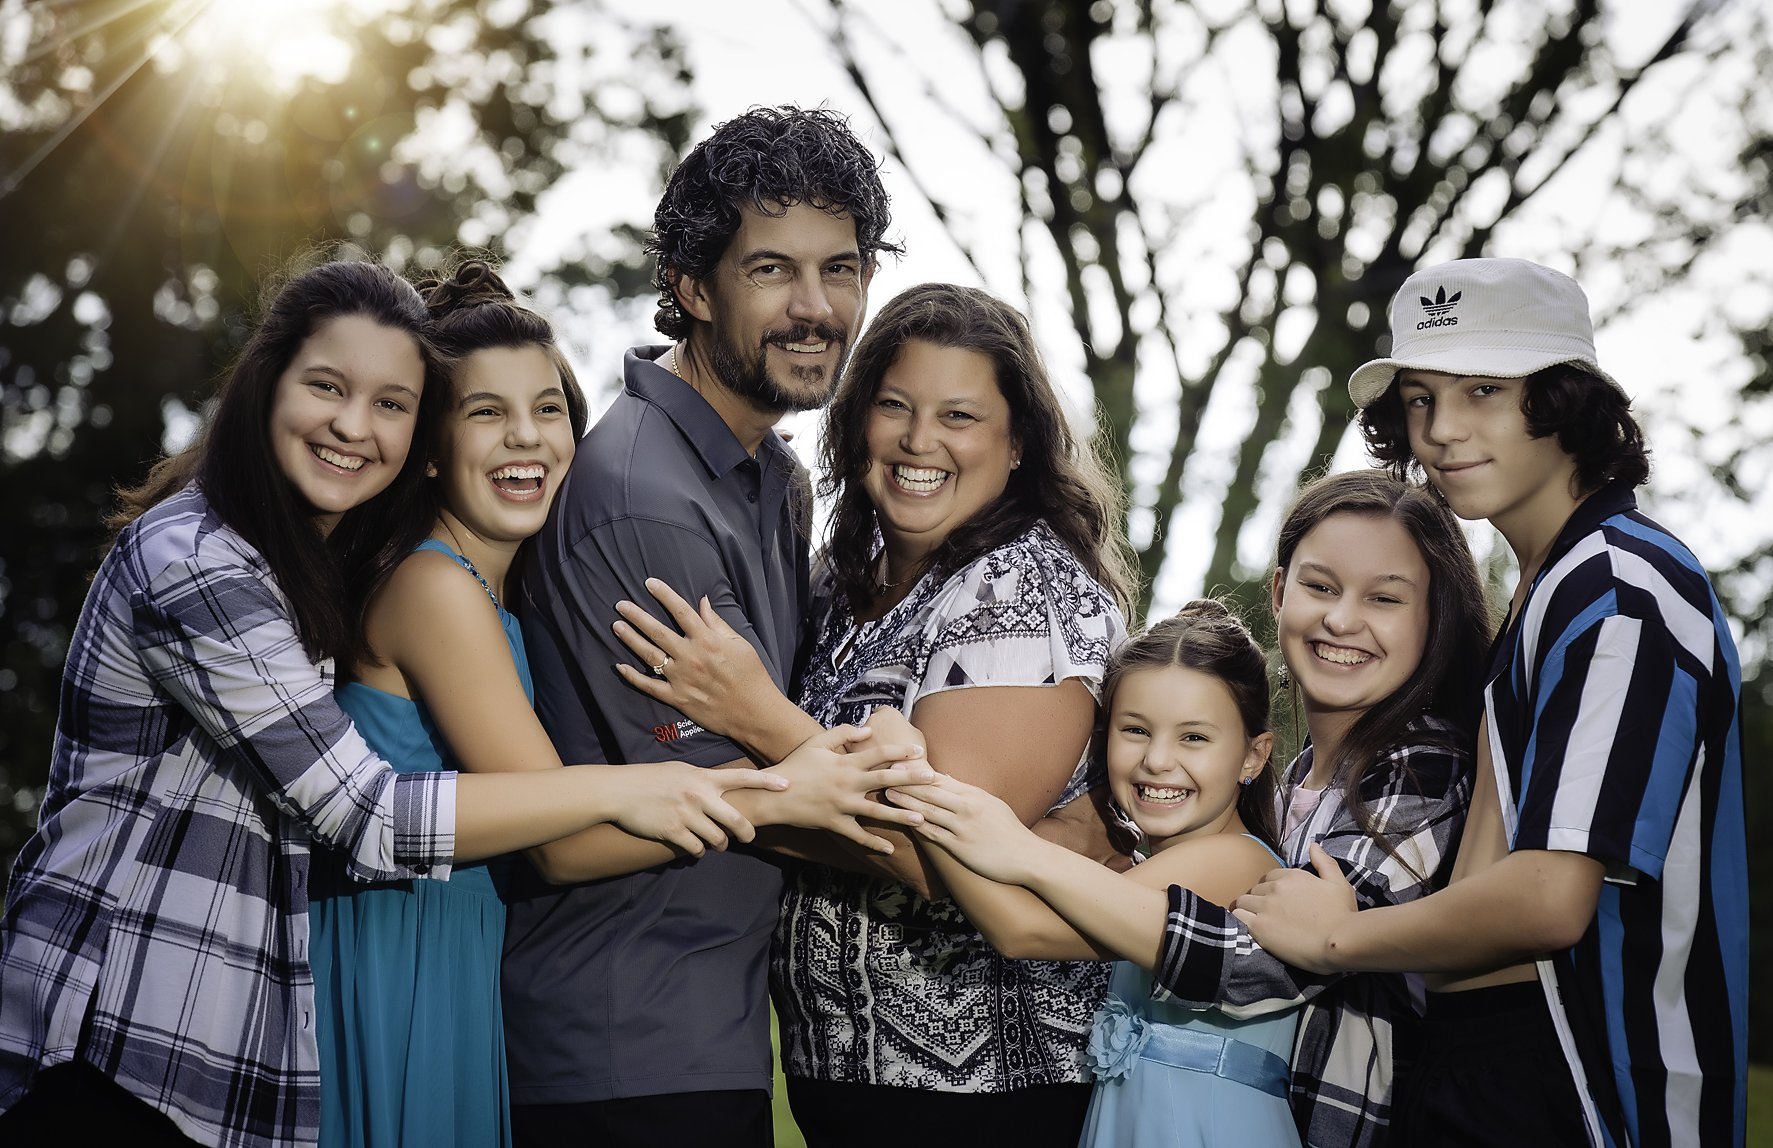 4 Things to Think About When Choosing a Photographer for Your Family Photos